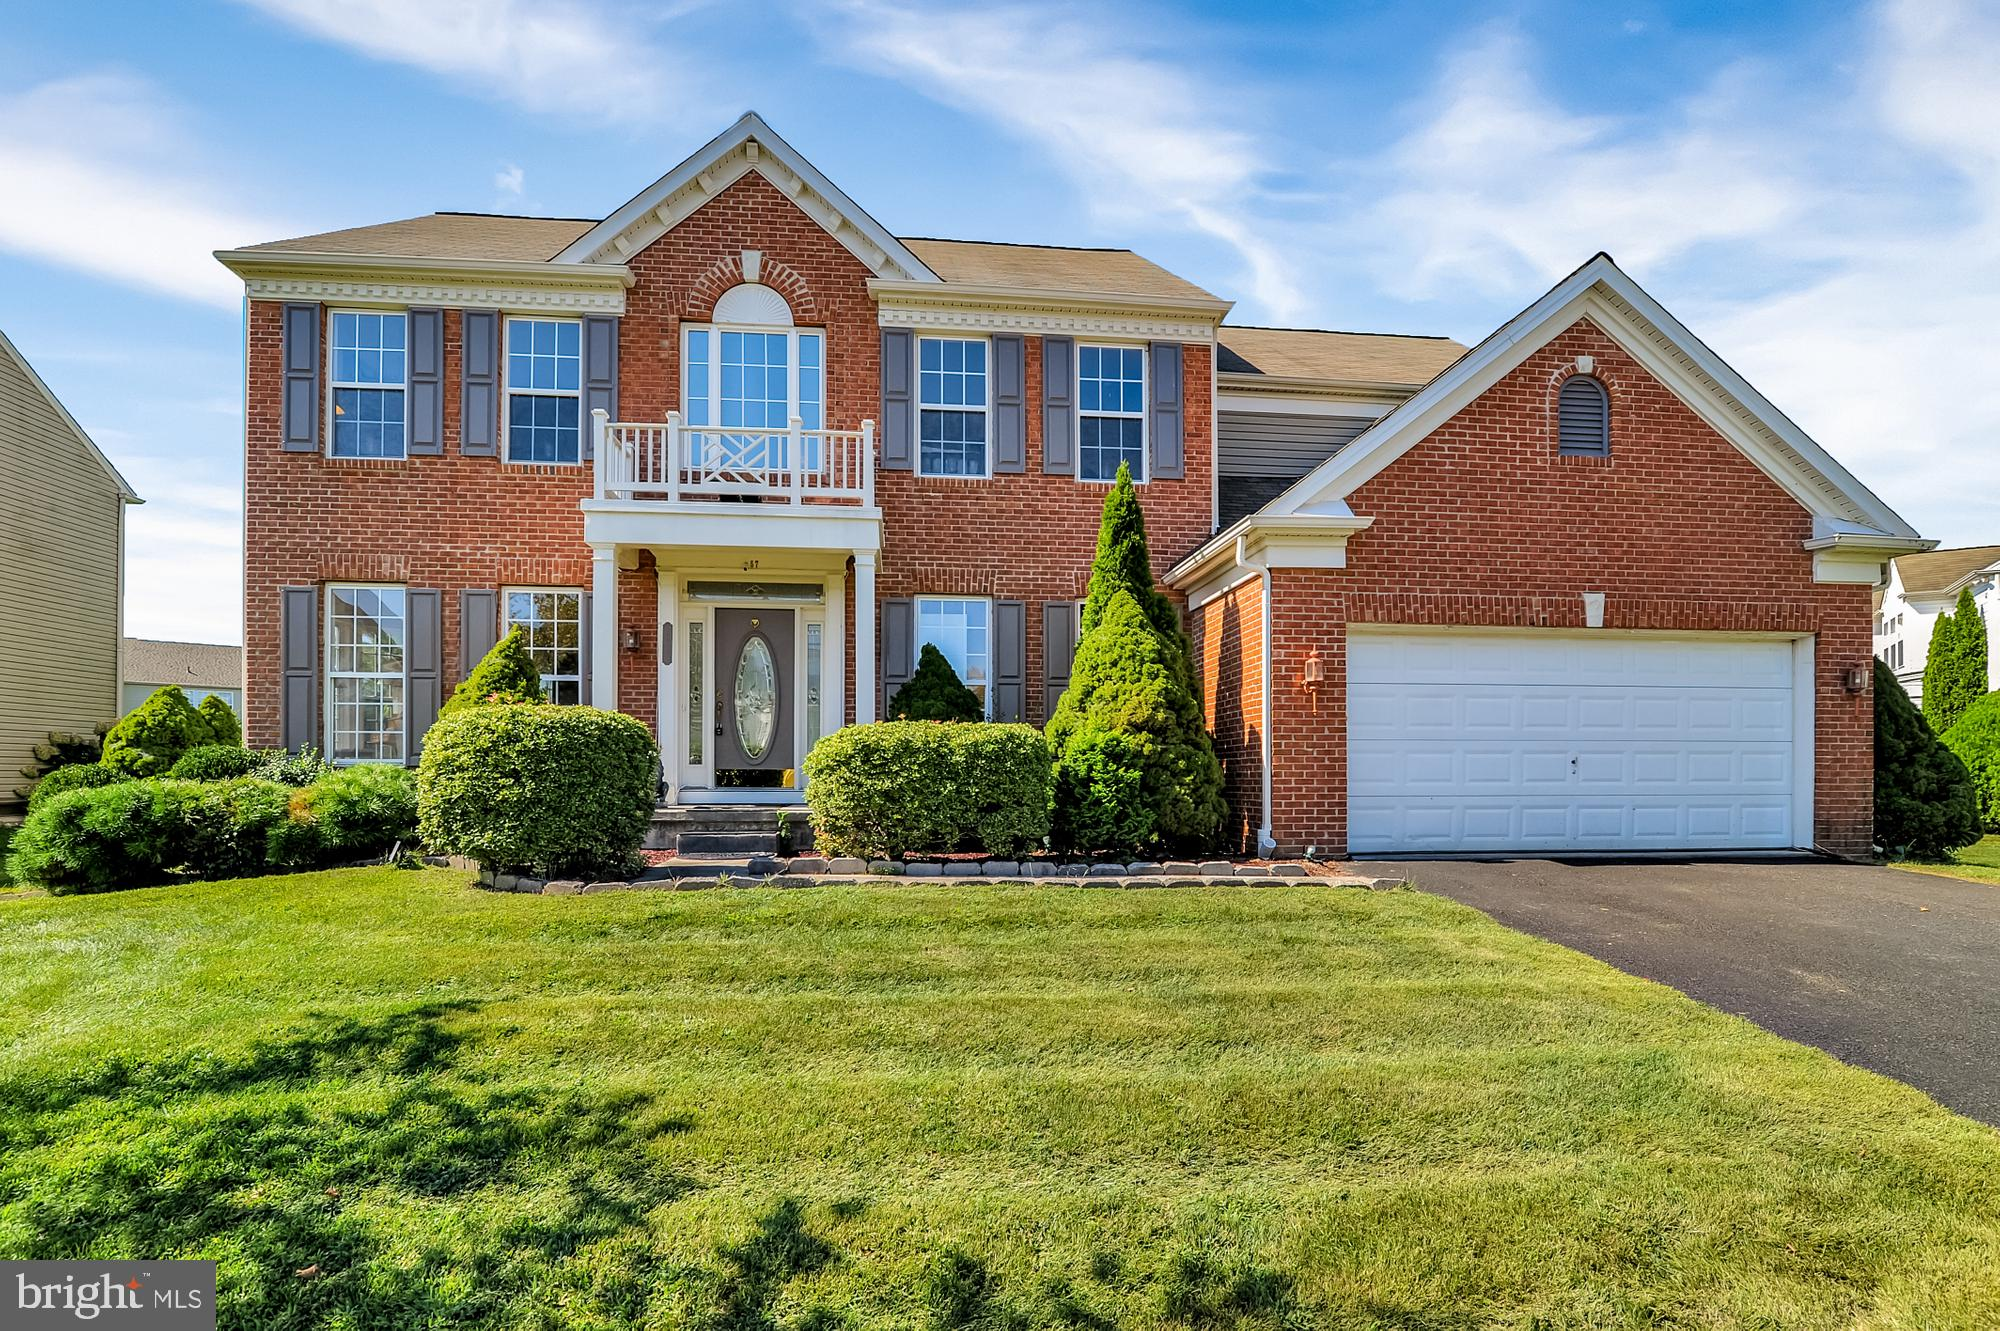 This traditional brick Colonial boasts mature landscaping and a handsome exterior that aims to please the most discriminating buyer. Once inside the two level foyer will wow you and your guests. Light and bright with a split staircase with catwalk at top looking down over the entryway. To your left is the formal living room with a picture window and fireplace. The dining area is perfect for entertaining, located between the formal living room and kitchen. The cook's kitchen features plentiful wood cabinets and endless prep space between the countertops plus the large island. Shiny hardwood floors enhance the design of this space. The island is perfect for a snack or quick meal and has room for four to sit at it. Off the kitchen is a large eating area with chandelier and sliding doors to the back patio. Beyond the kitchen and eating area is the large family room with another fireplace and a wall of windows to show off your gorgeous backyard. Retreat upstairs to your luxurious master suite! The en suite bathroom is spa-quality with a soaking tub, walk-in shower, and large vanity. The other three bedrooms feature wall-to-wall carpeting, ceiling fans, large closets and multiple windows for natural light. They all share a hallway bathroom with a tiled tub/shower combo and large vanity with plenty of room for storing all the essentials. The laundry room is conveniently located on the second floor too, complete with built-in storage space! There is additional space in the separate office, perfect for working from home or eLearning! Out back you have your own personal oasis with the brick paver patio complete with sunshade for those hot summer days. The yard is expansive and lined with a wall of mature trees for your privacy. Enjoy keeping your grounds gorgeous year round and saving money on your utility bills with the custom sprinkler system and private well! Click the link to take a virtual tour:  https://youtu.be/YqVhYRZyjCI